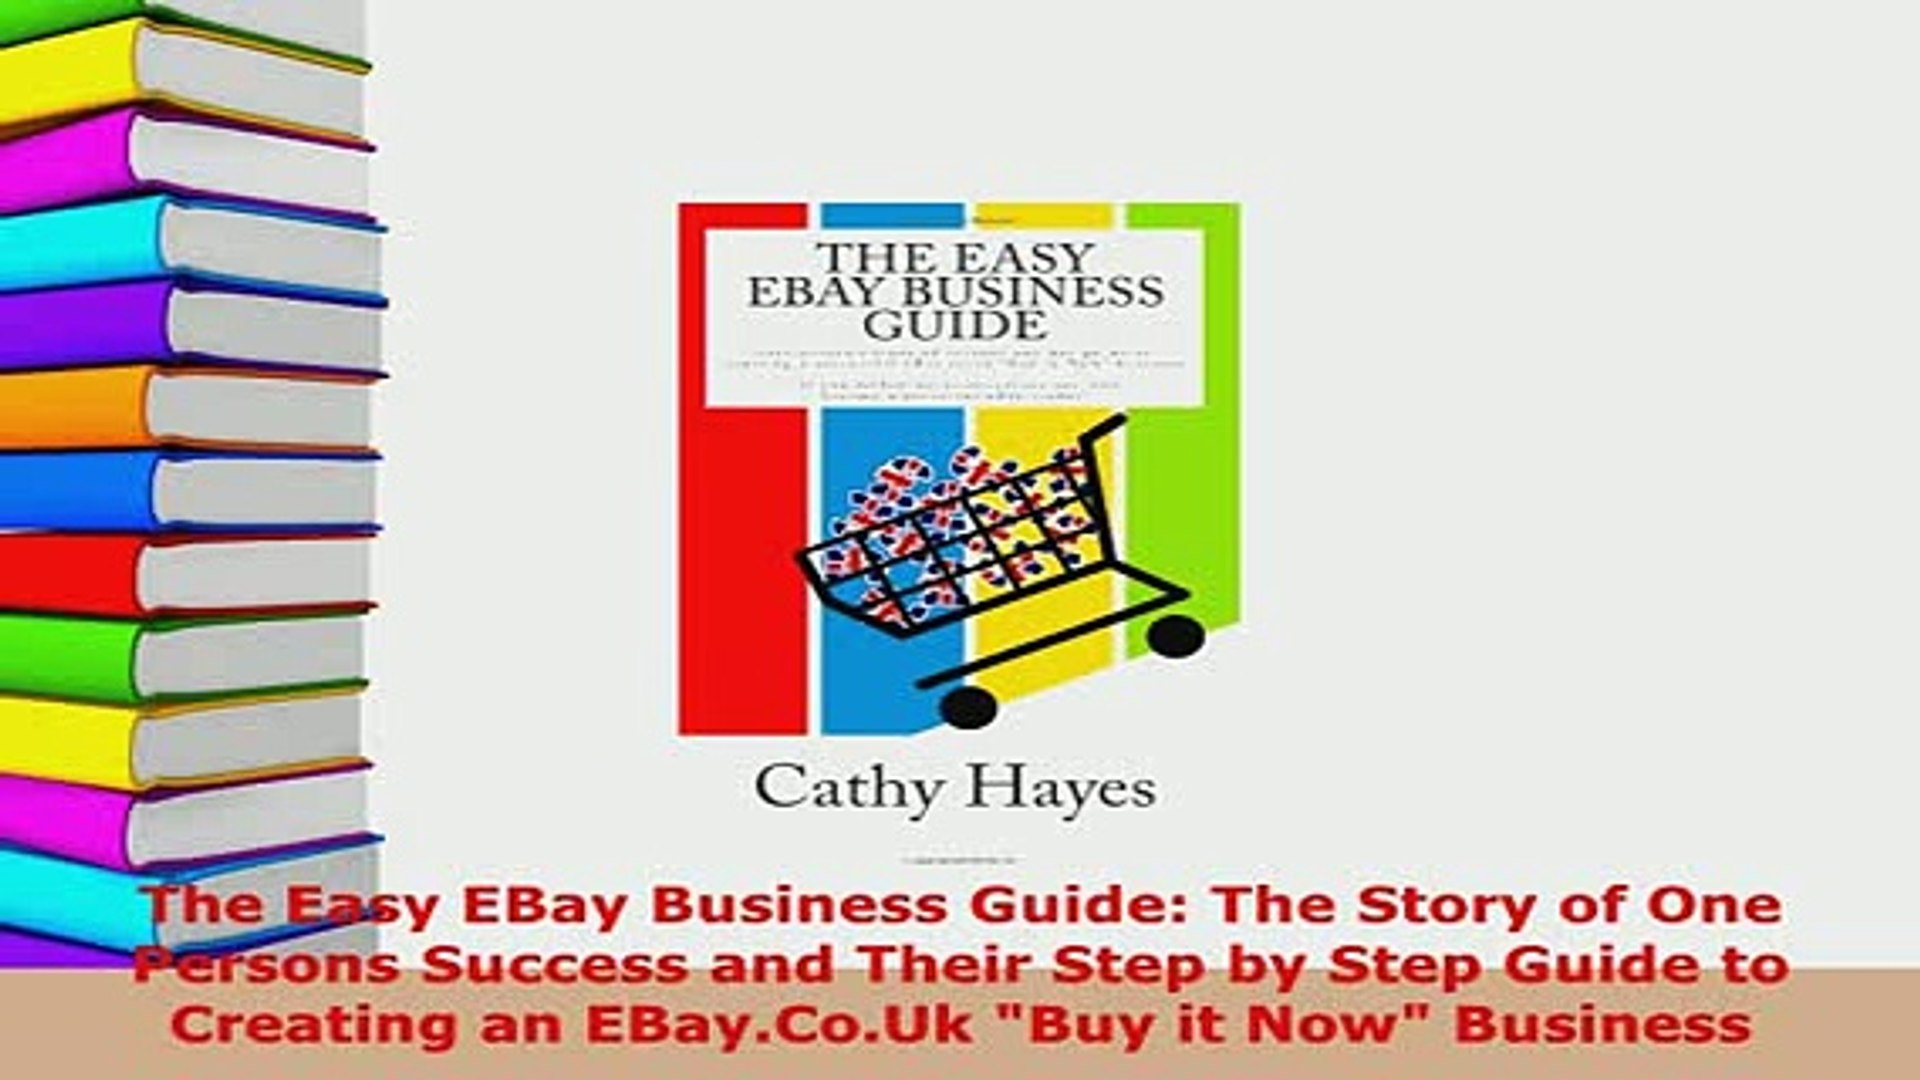 Pdf The Easy Ebay Business Guide The Story Of One Persons Success And Their Step By Step Download Full Ebook Video Dailymotion